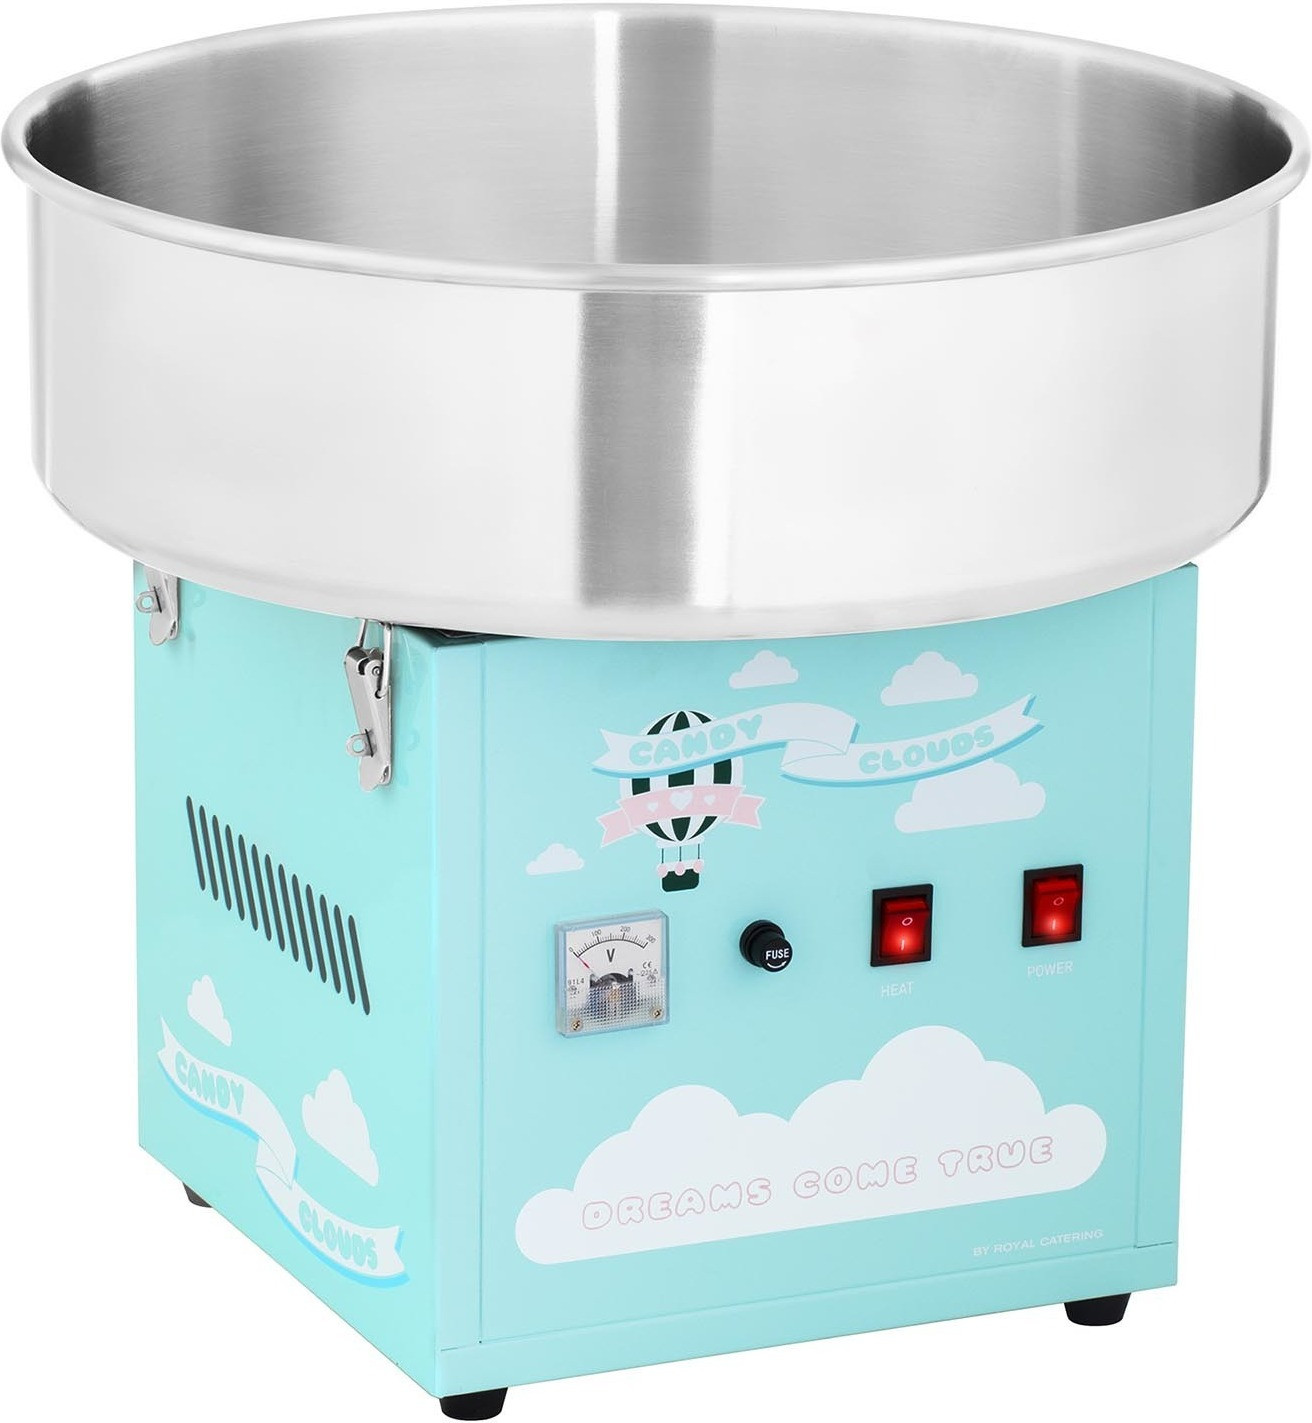 Image of Catering Royal Candymaker RCZK-1200-BG